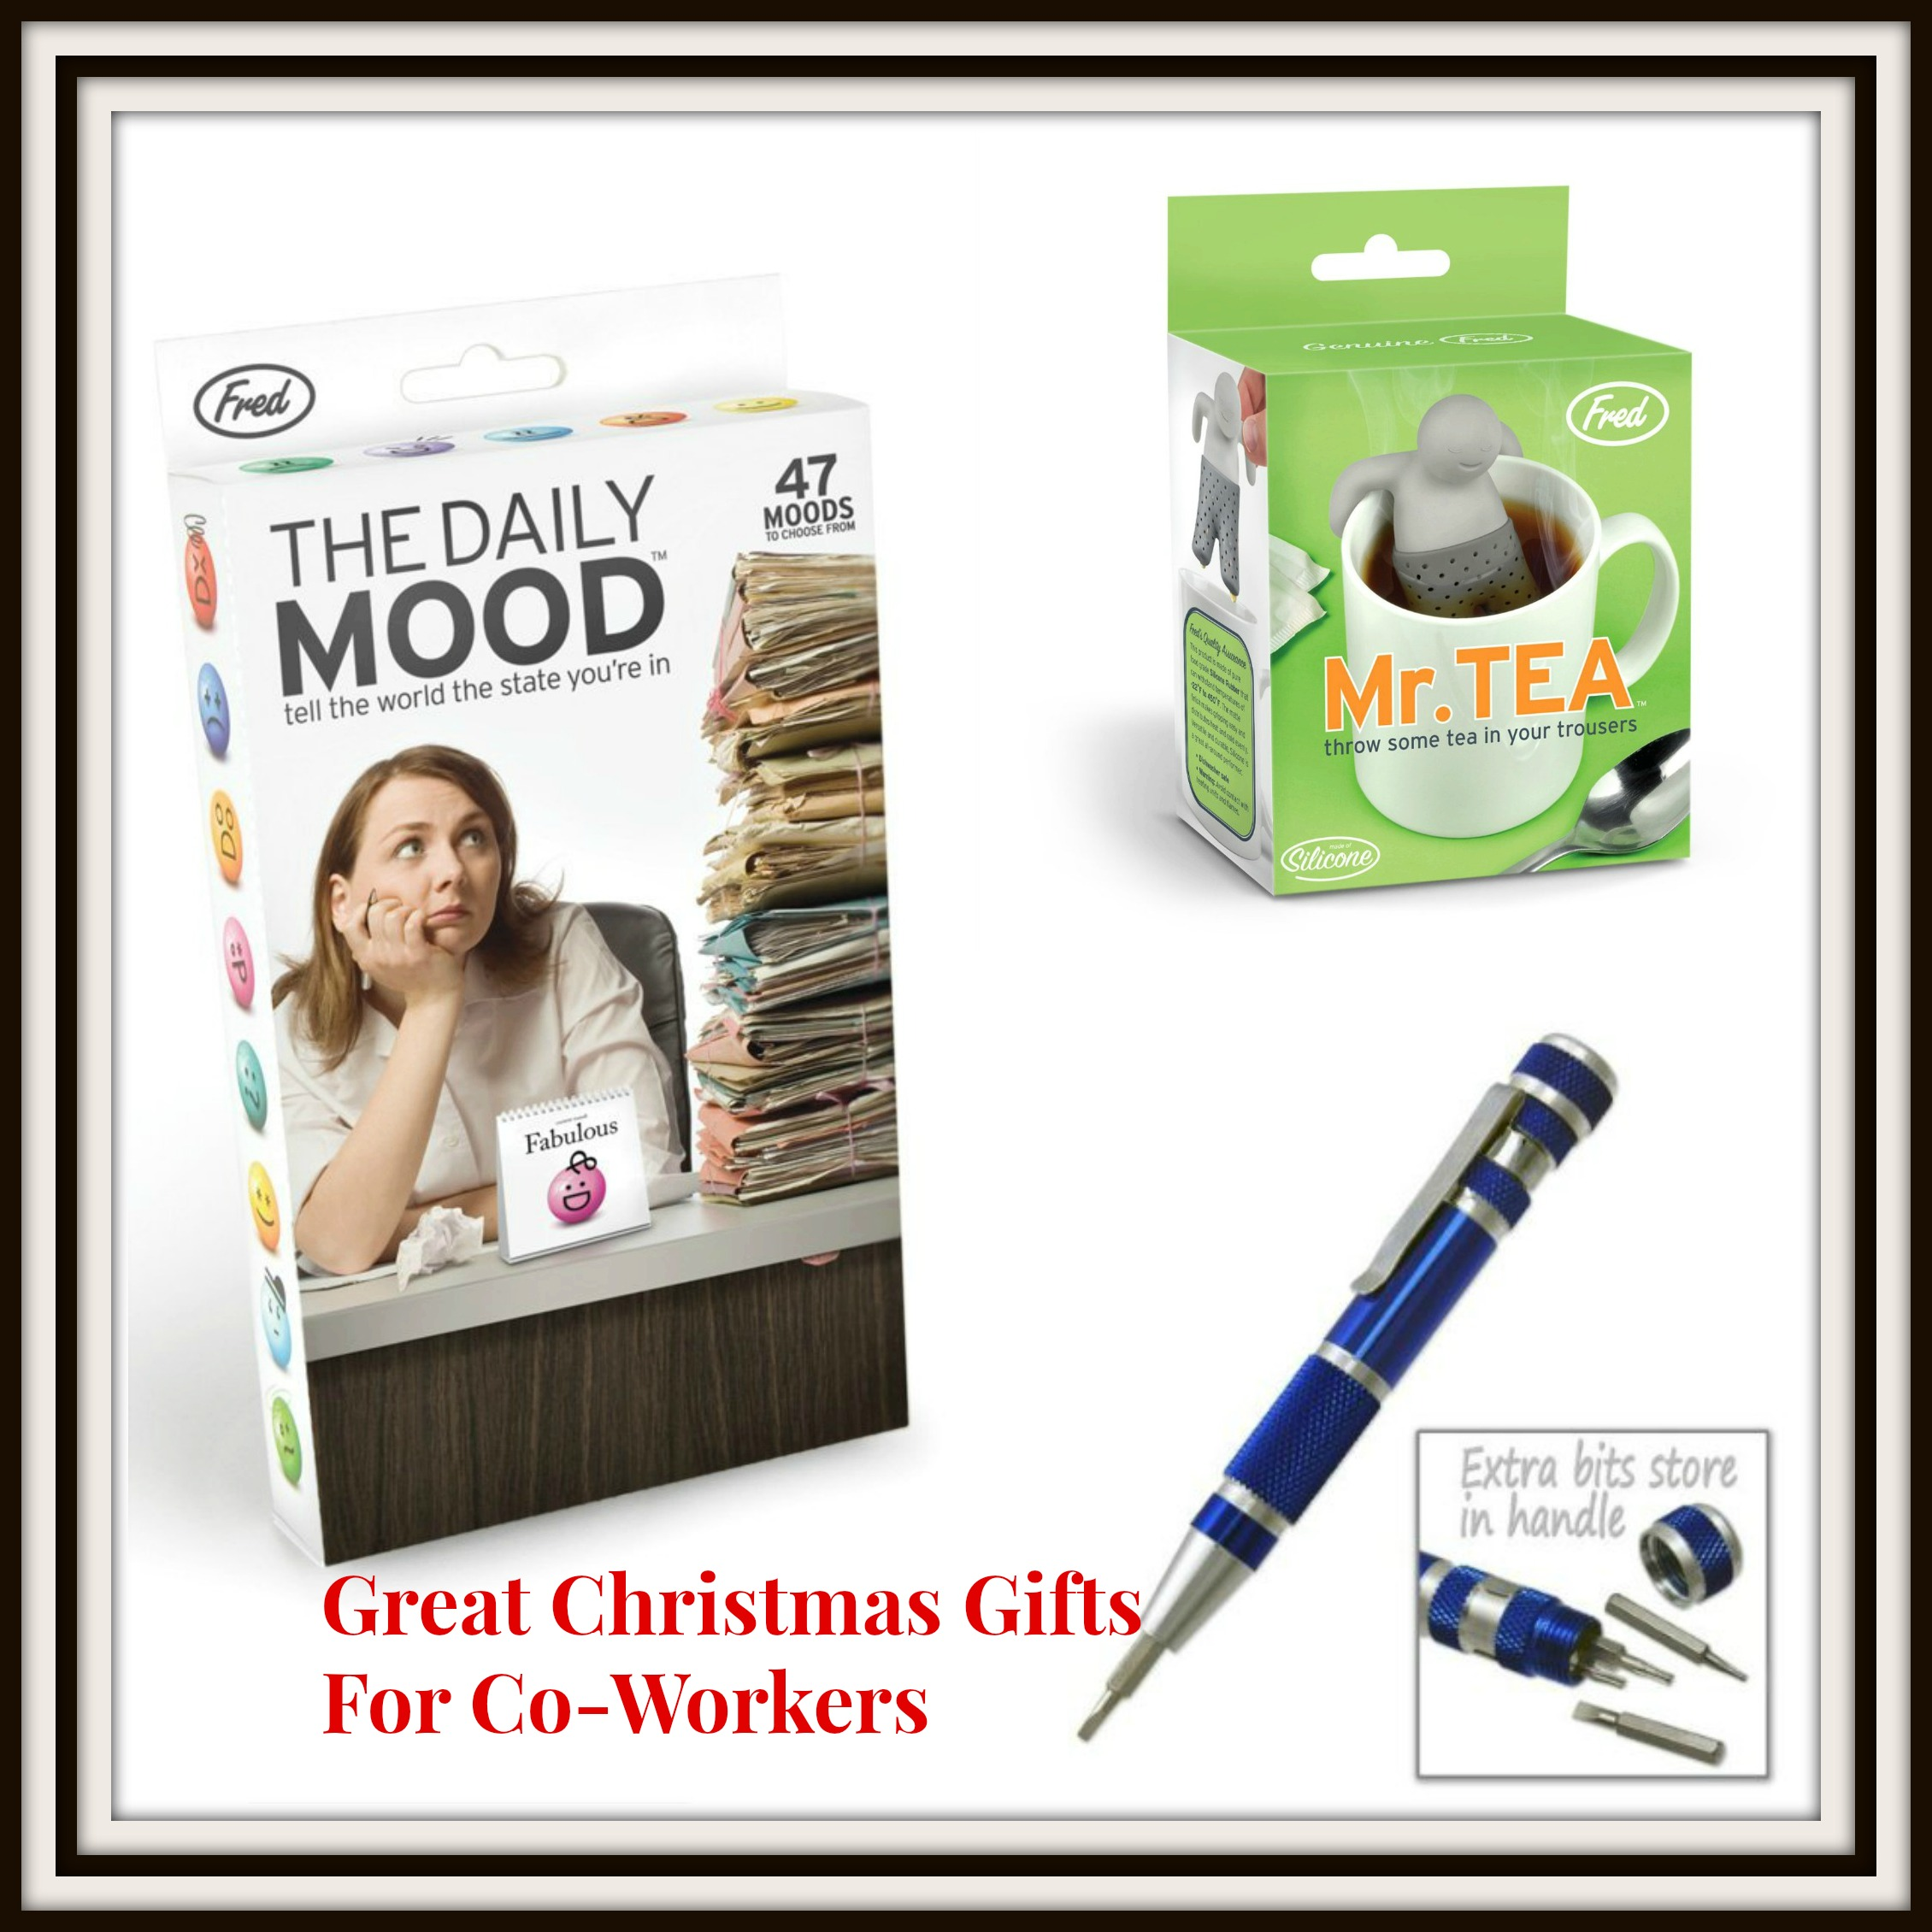 9 Great Christmas Gifts For Co-Workers – Saving Mamasita